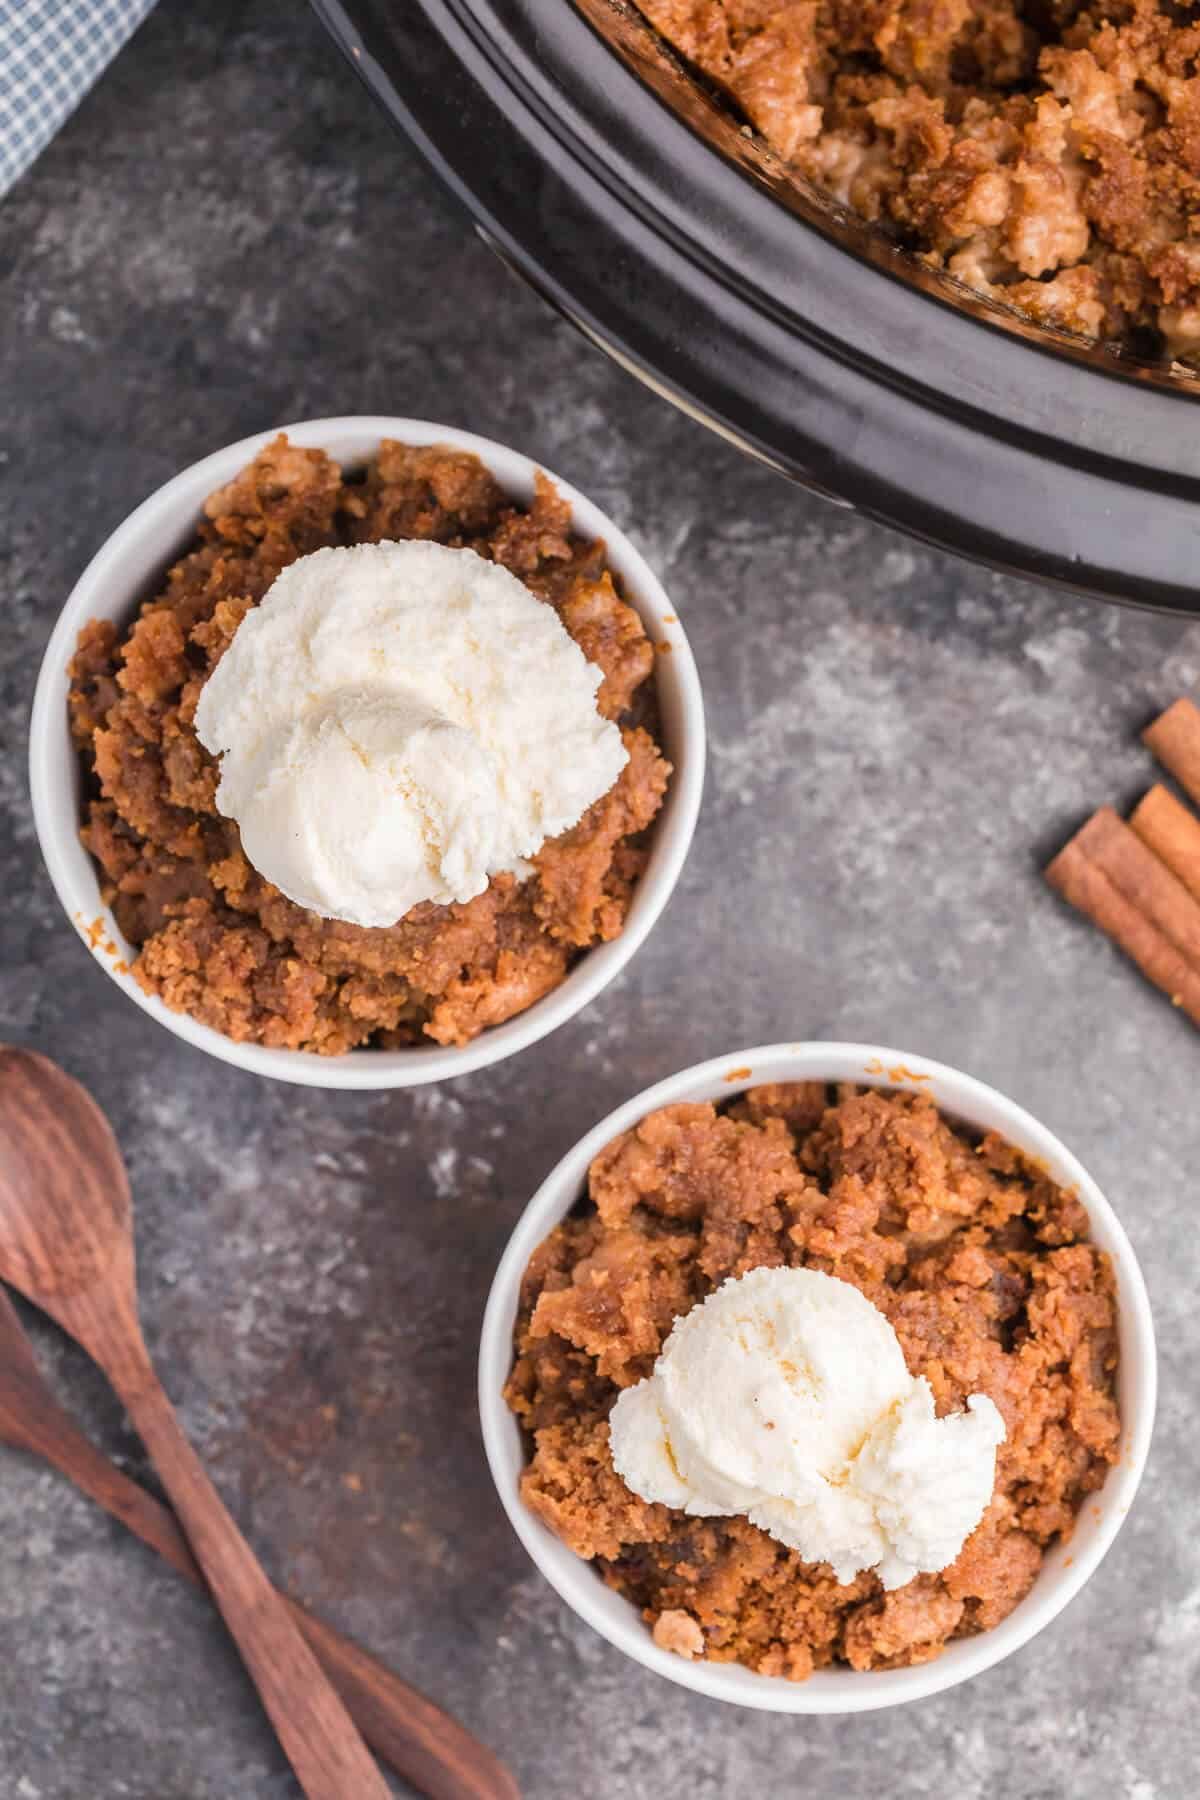 Slow Cooker Pumpkin Dump Cake - This is the easiest fall dessert! Your family will beg for this Crockpot dessert recipe made with boxed cake mix all year long.